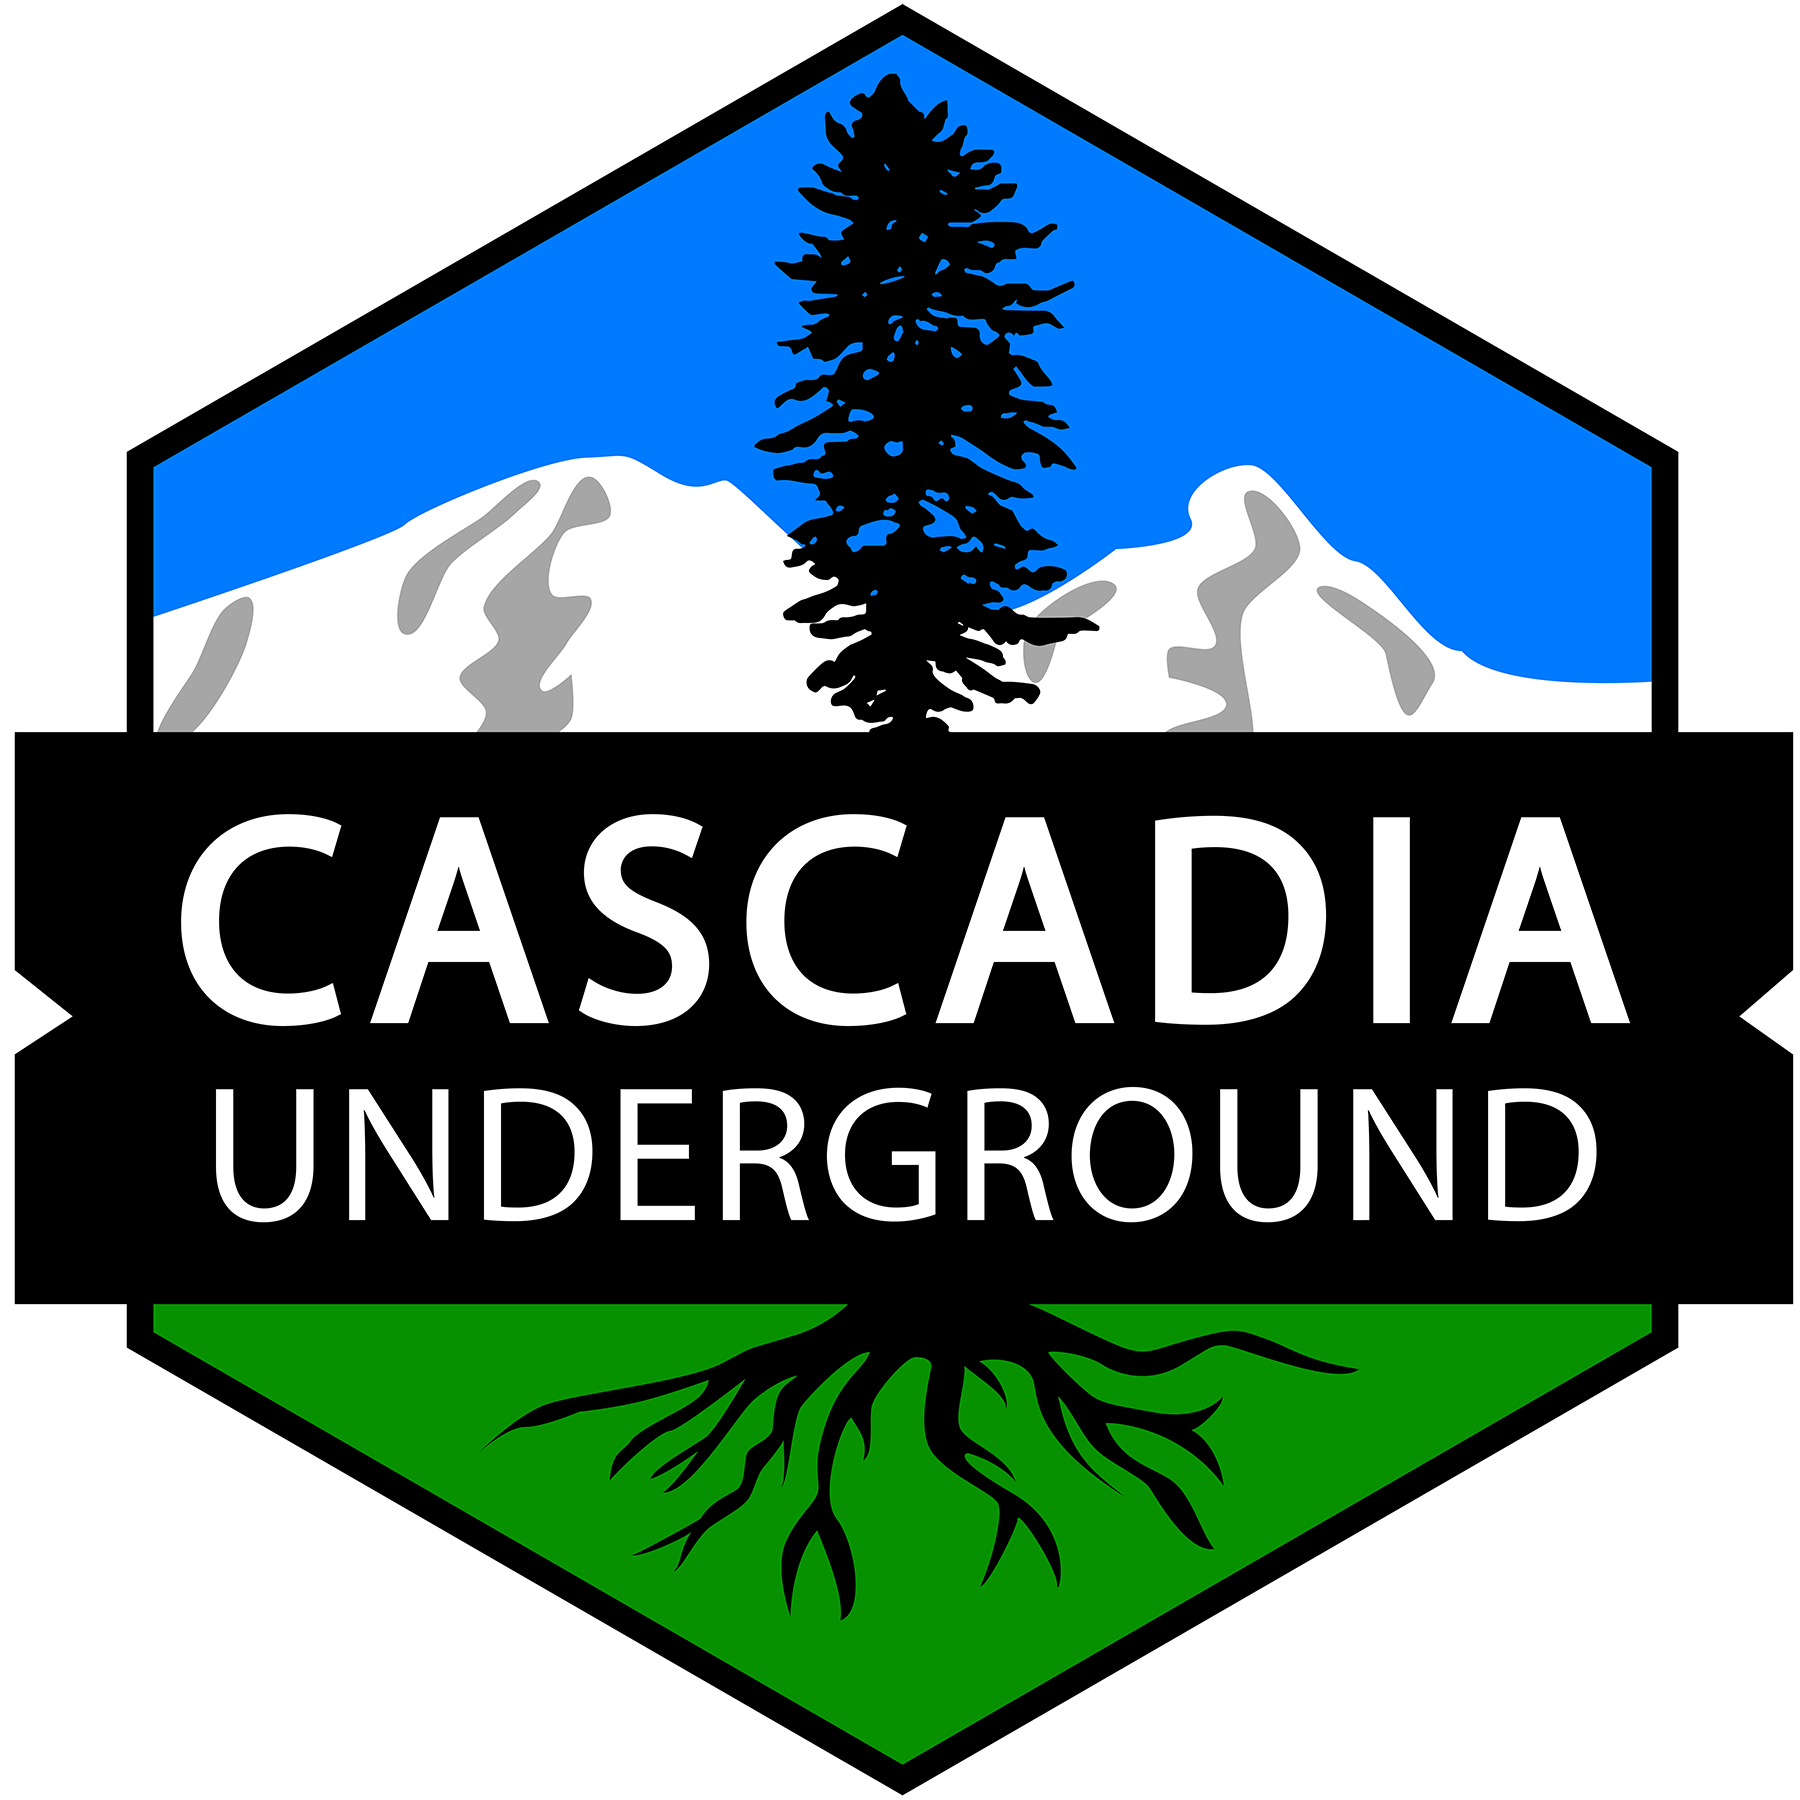 Voting clipart jacksonian democracy. Welcome to the cascadia